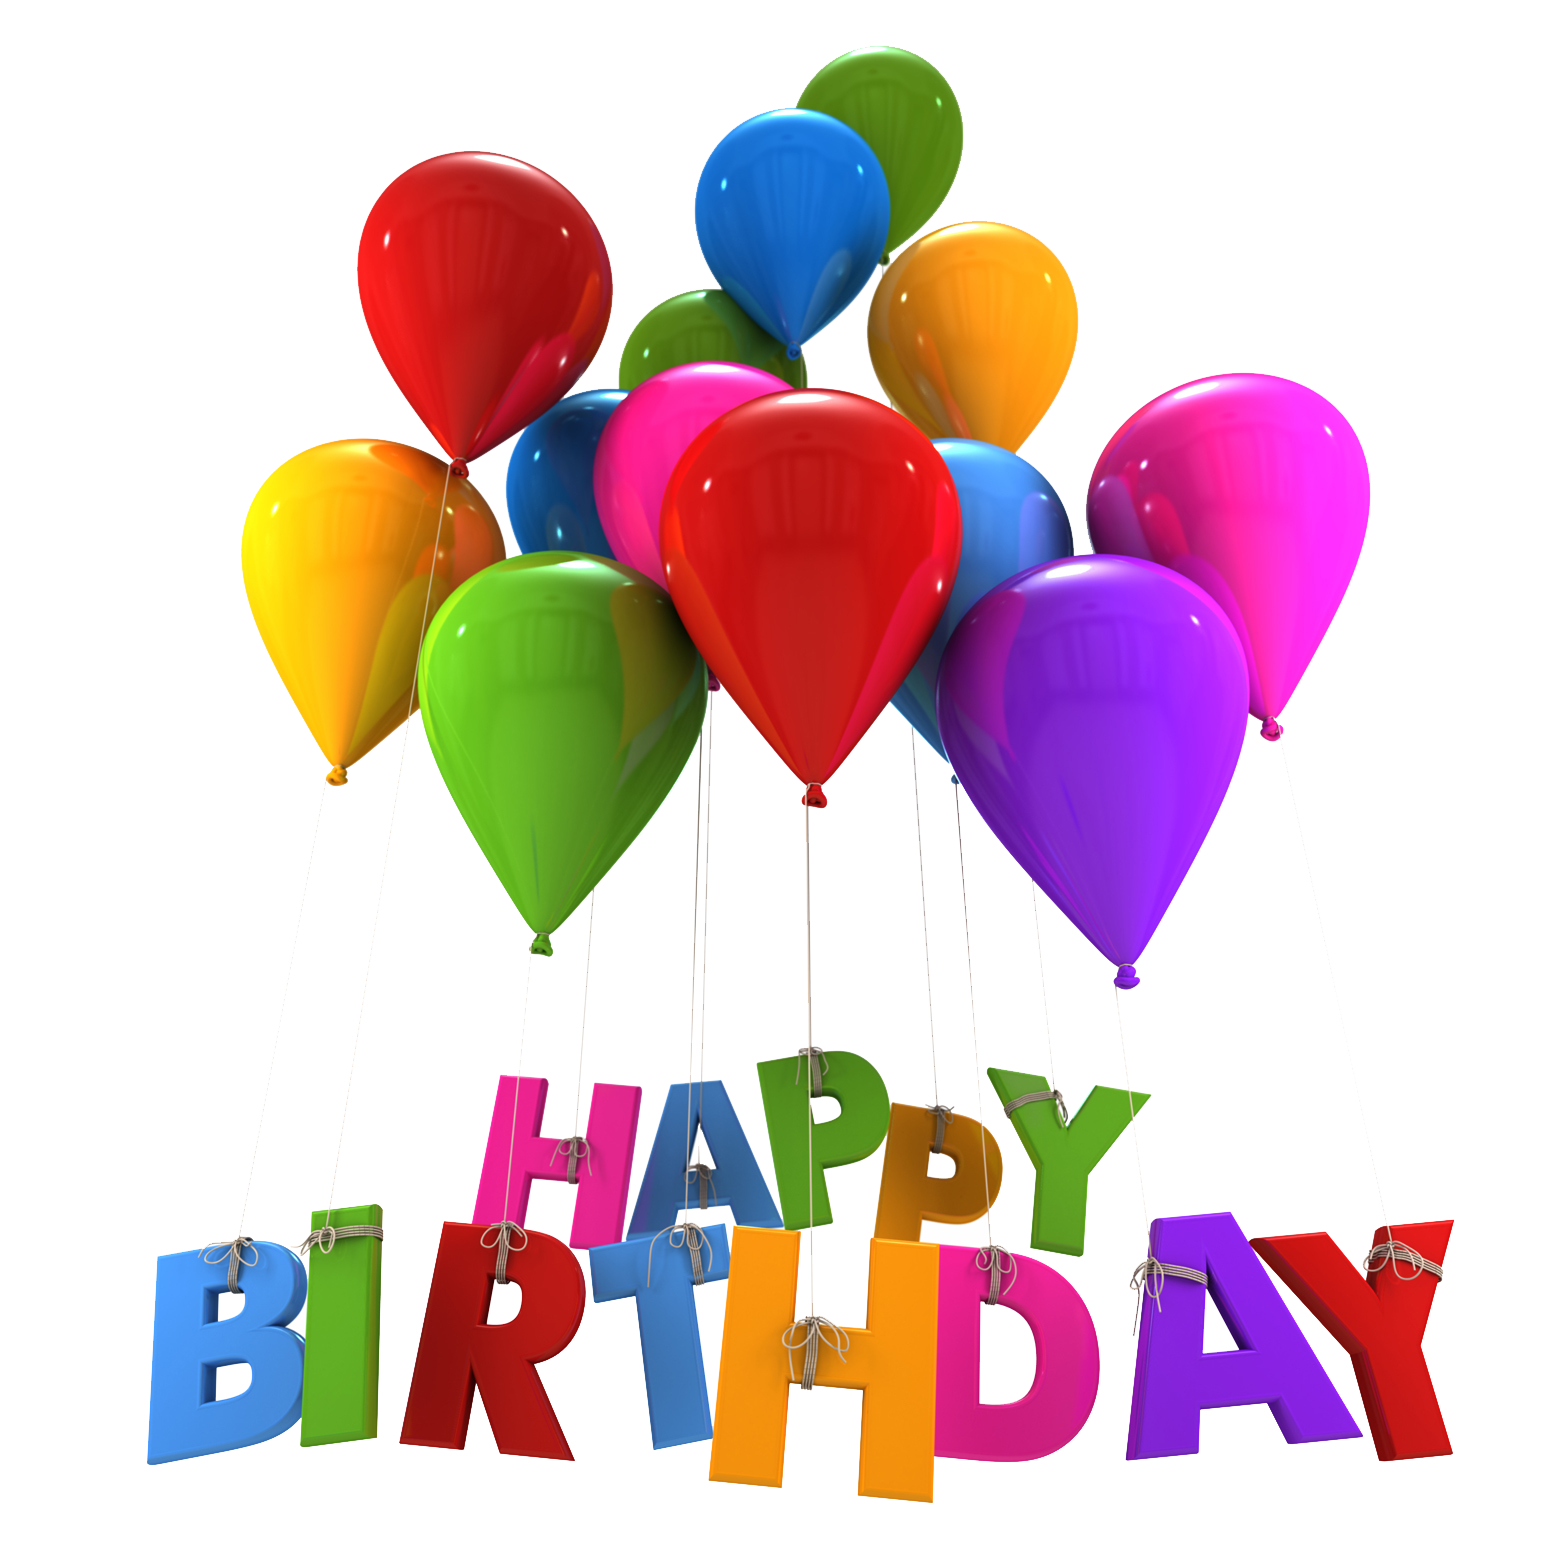 Happy birthday banner background png. Images free download